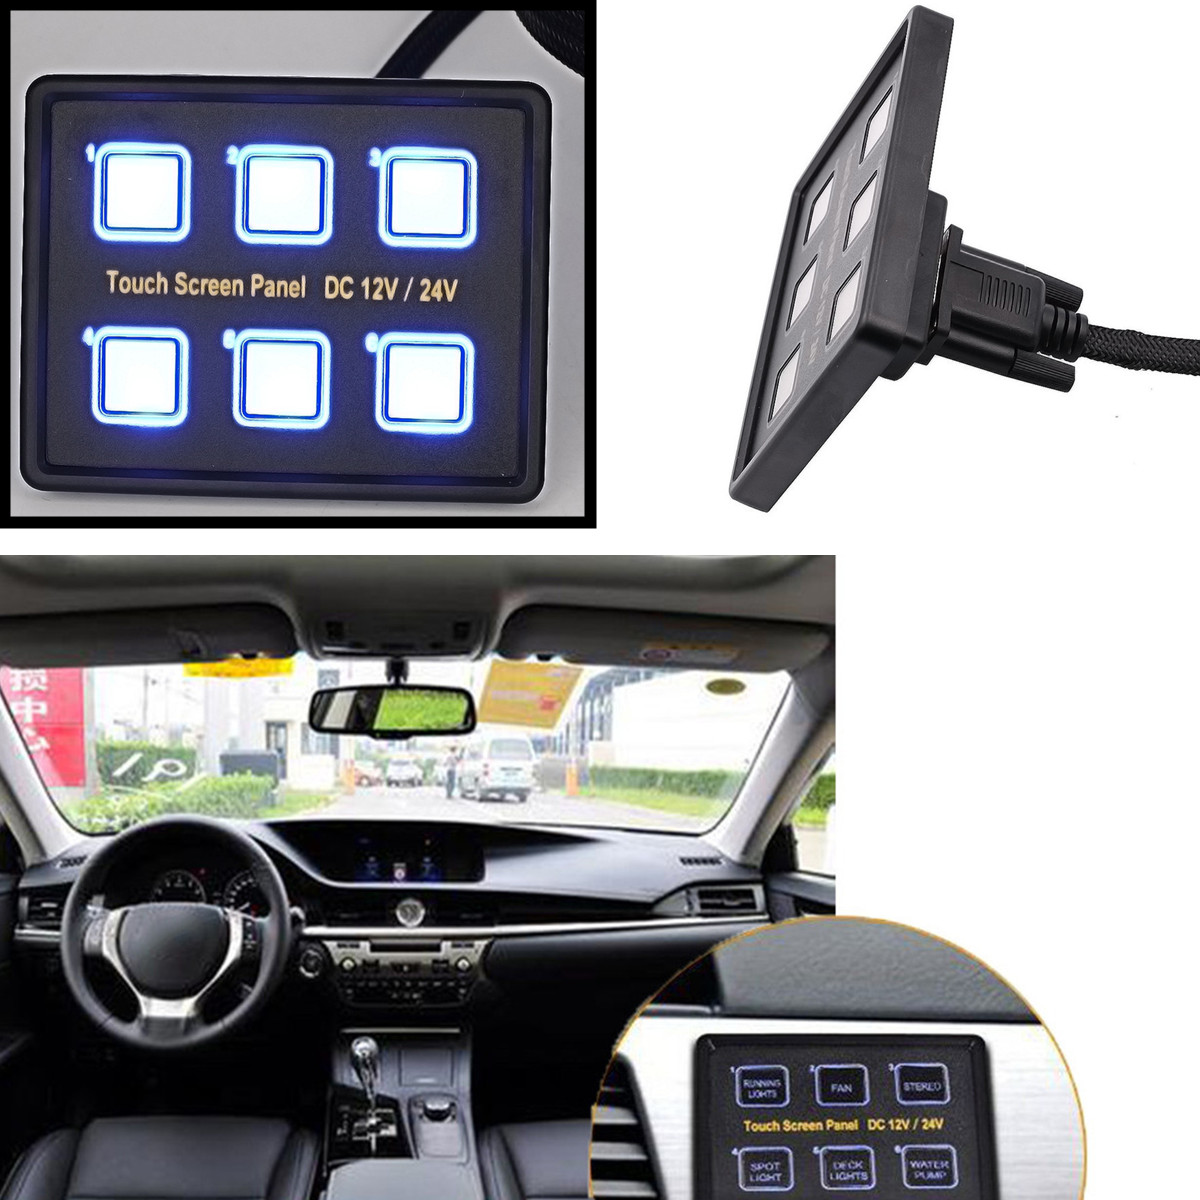 for Car RV Marine Boat Car Button Push Switch 6 Way Switches Touch Screen Multi-function Combination Switch Panel